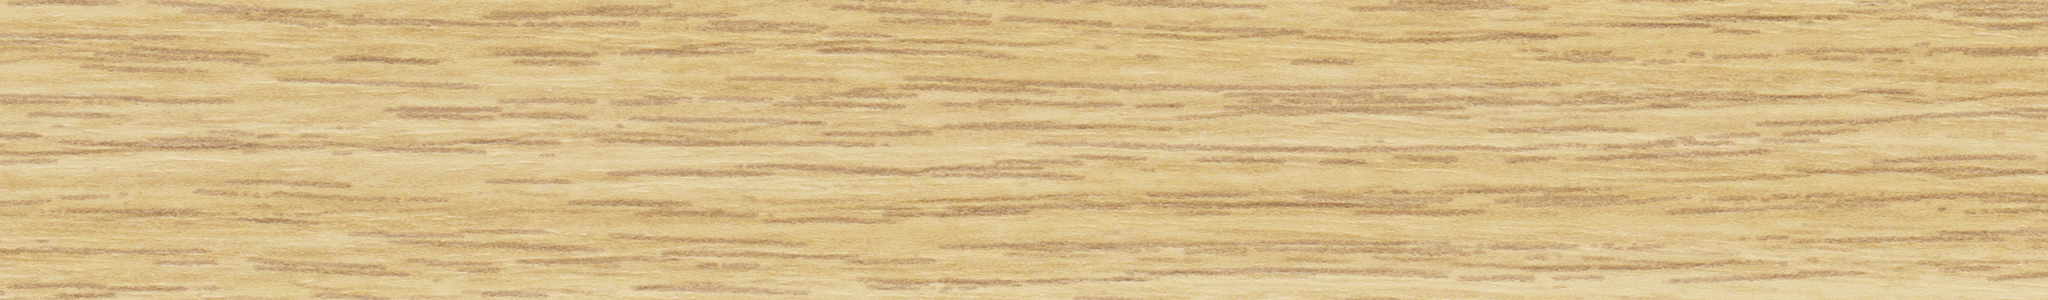 HD 44757 Melamine Edge Natural Oak Pore